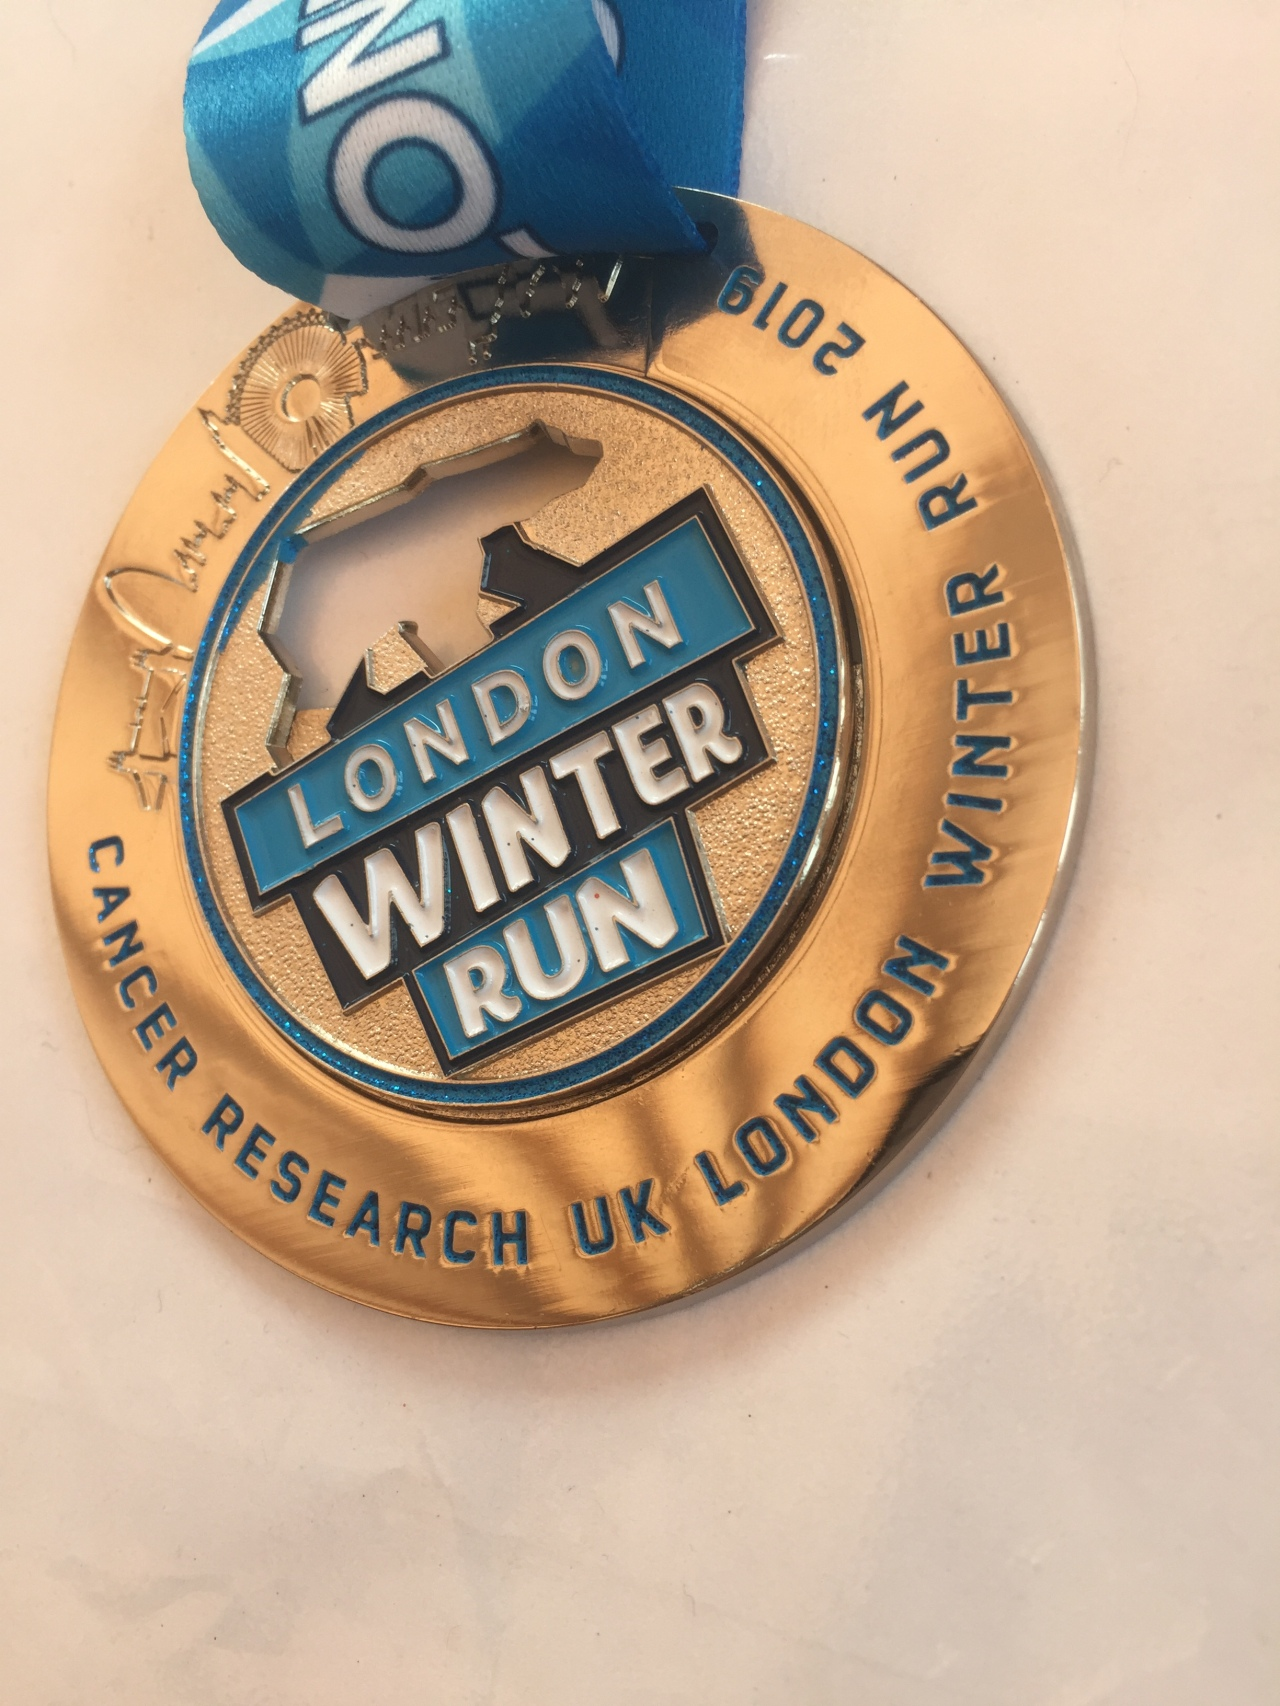 Running 2019 – The London Winter Run, London